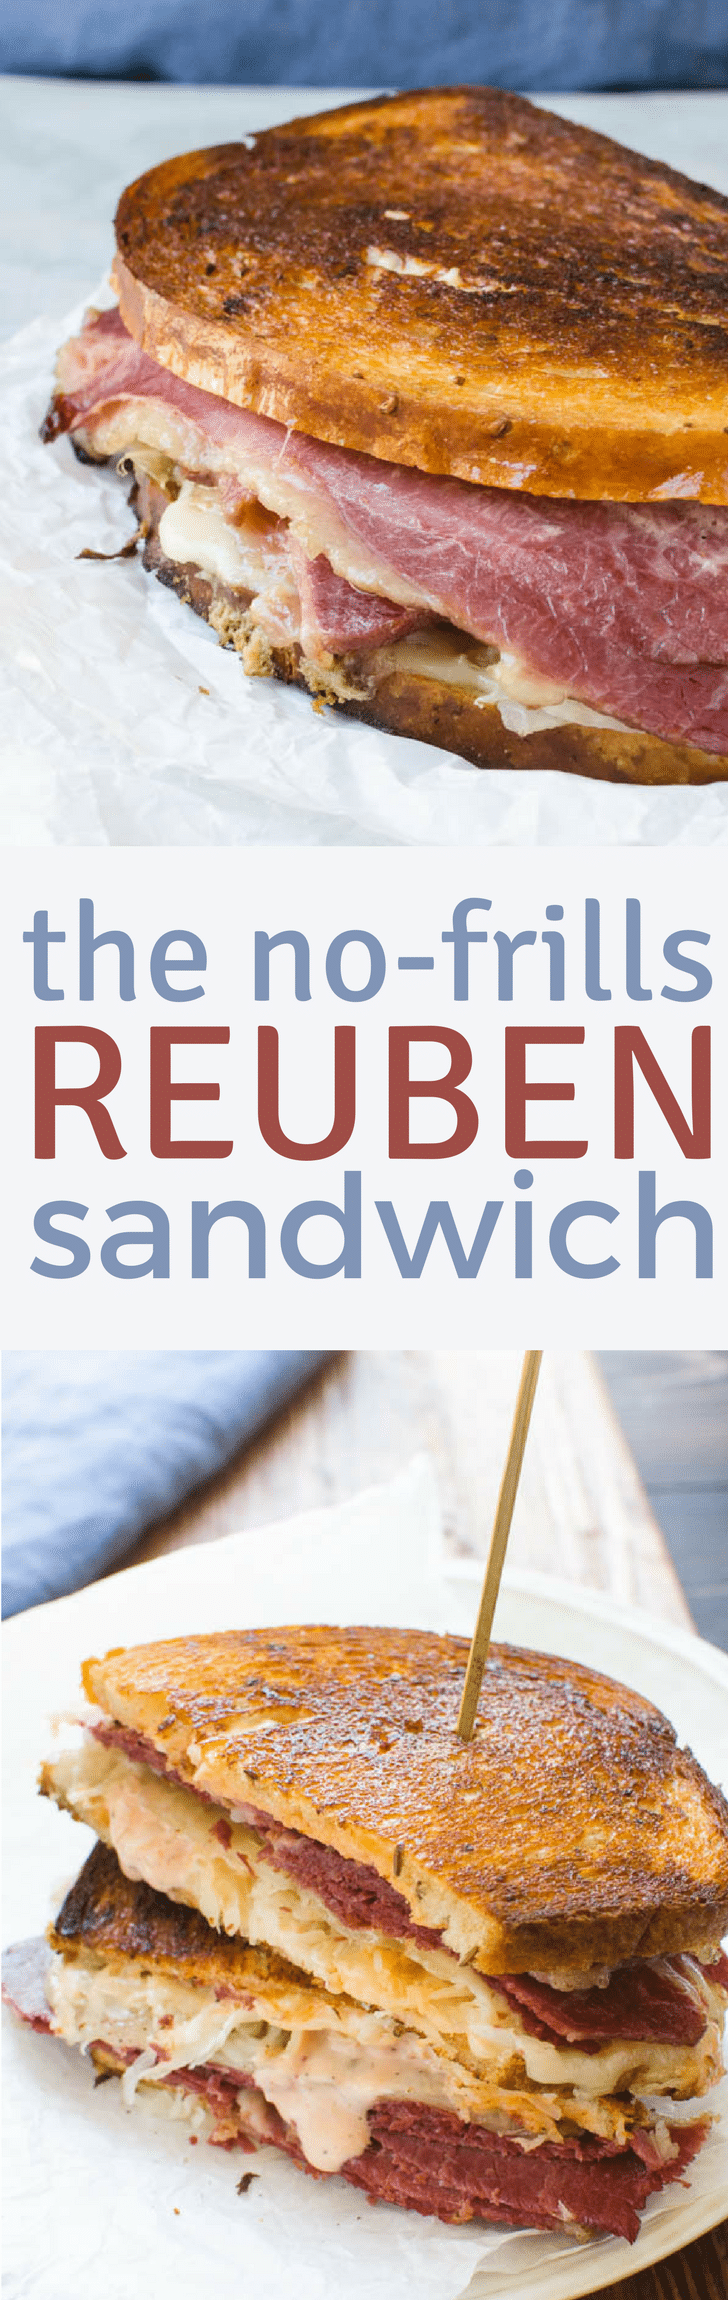 The Reuben a hearty grilled corned beef sandwich that's taken to the next level with Swiss cheese and sauerkraut, is easy to make at home. This Classic Reuben recipe has tips on how to make yours, the best reuben at home.  Great for using up leftover corned beef. #reuben #reubensandwich #grilledsandwich #cornedbeef #russiandressing #swisscheese #sandwichrecipe #sandwich #sauerkraut #homemadereuben #reubendressing #reubenfromscratch #classicreuben #reubenrecipe